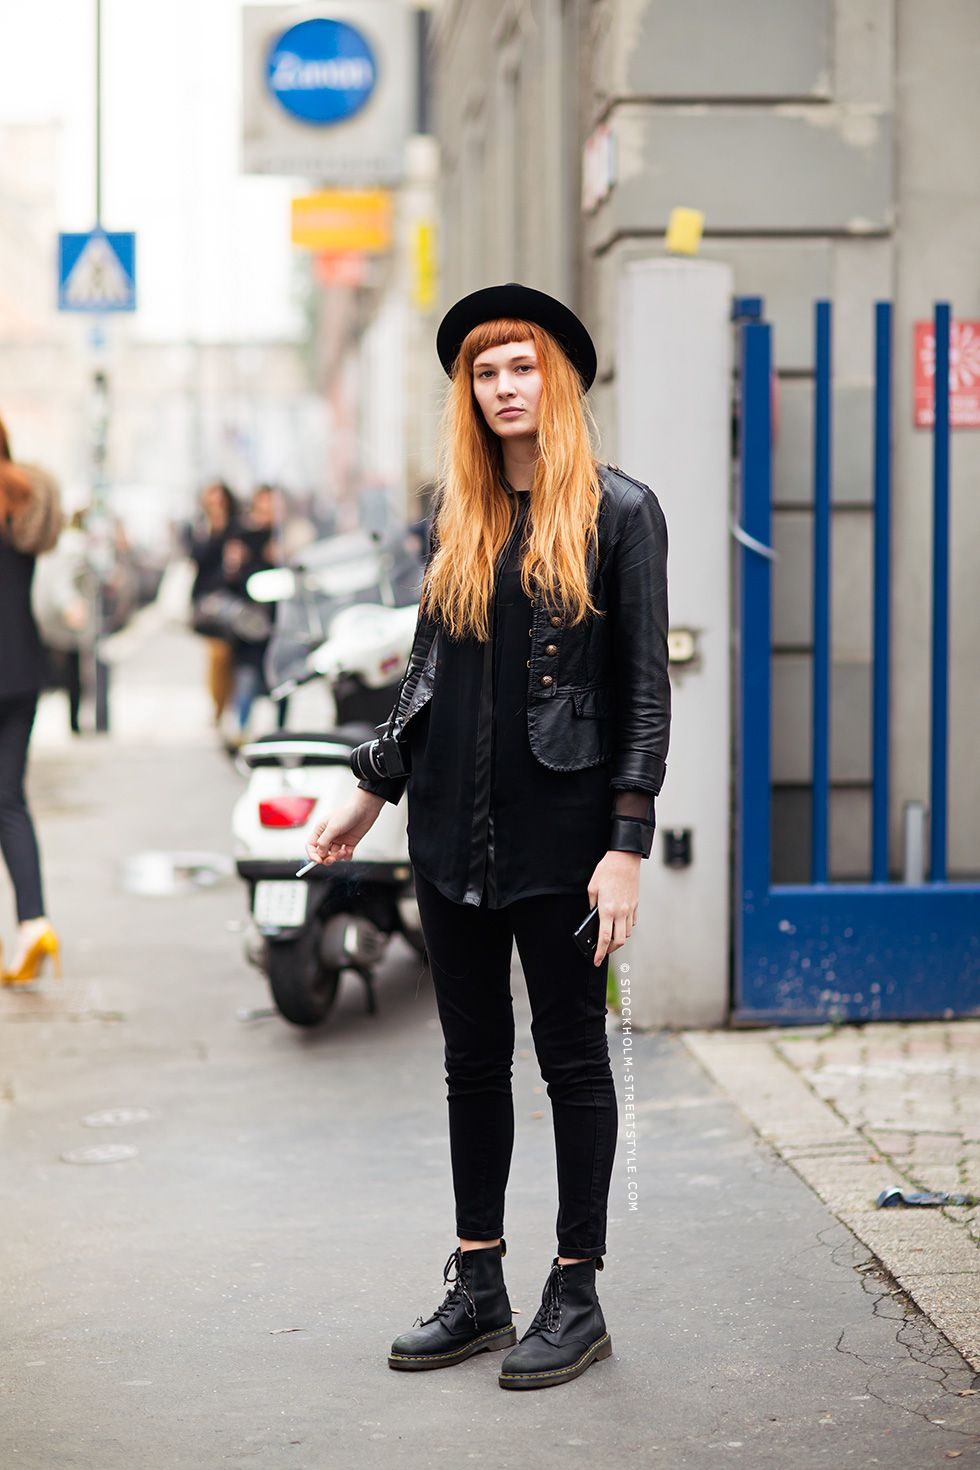 alice stockholm streetstyle doc martens style and skinny jeans. Black Bedroom Furniture Sets. Home Design Ideas